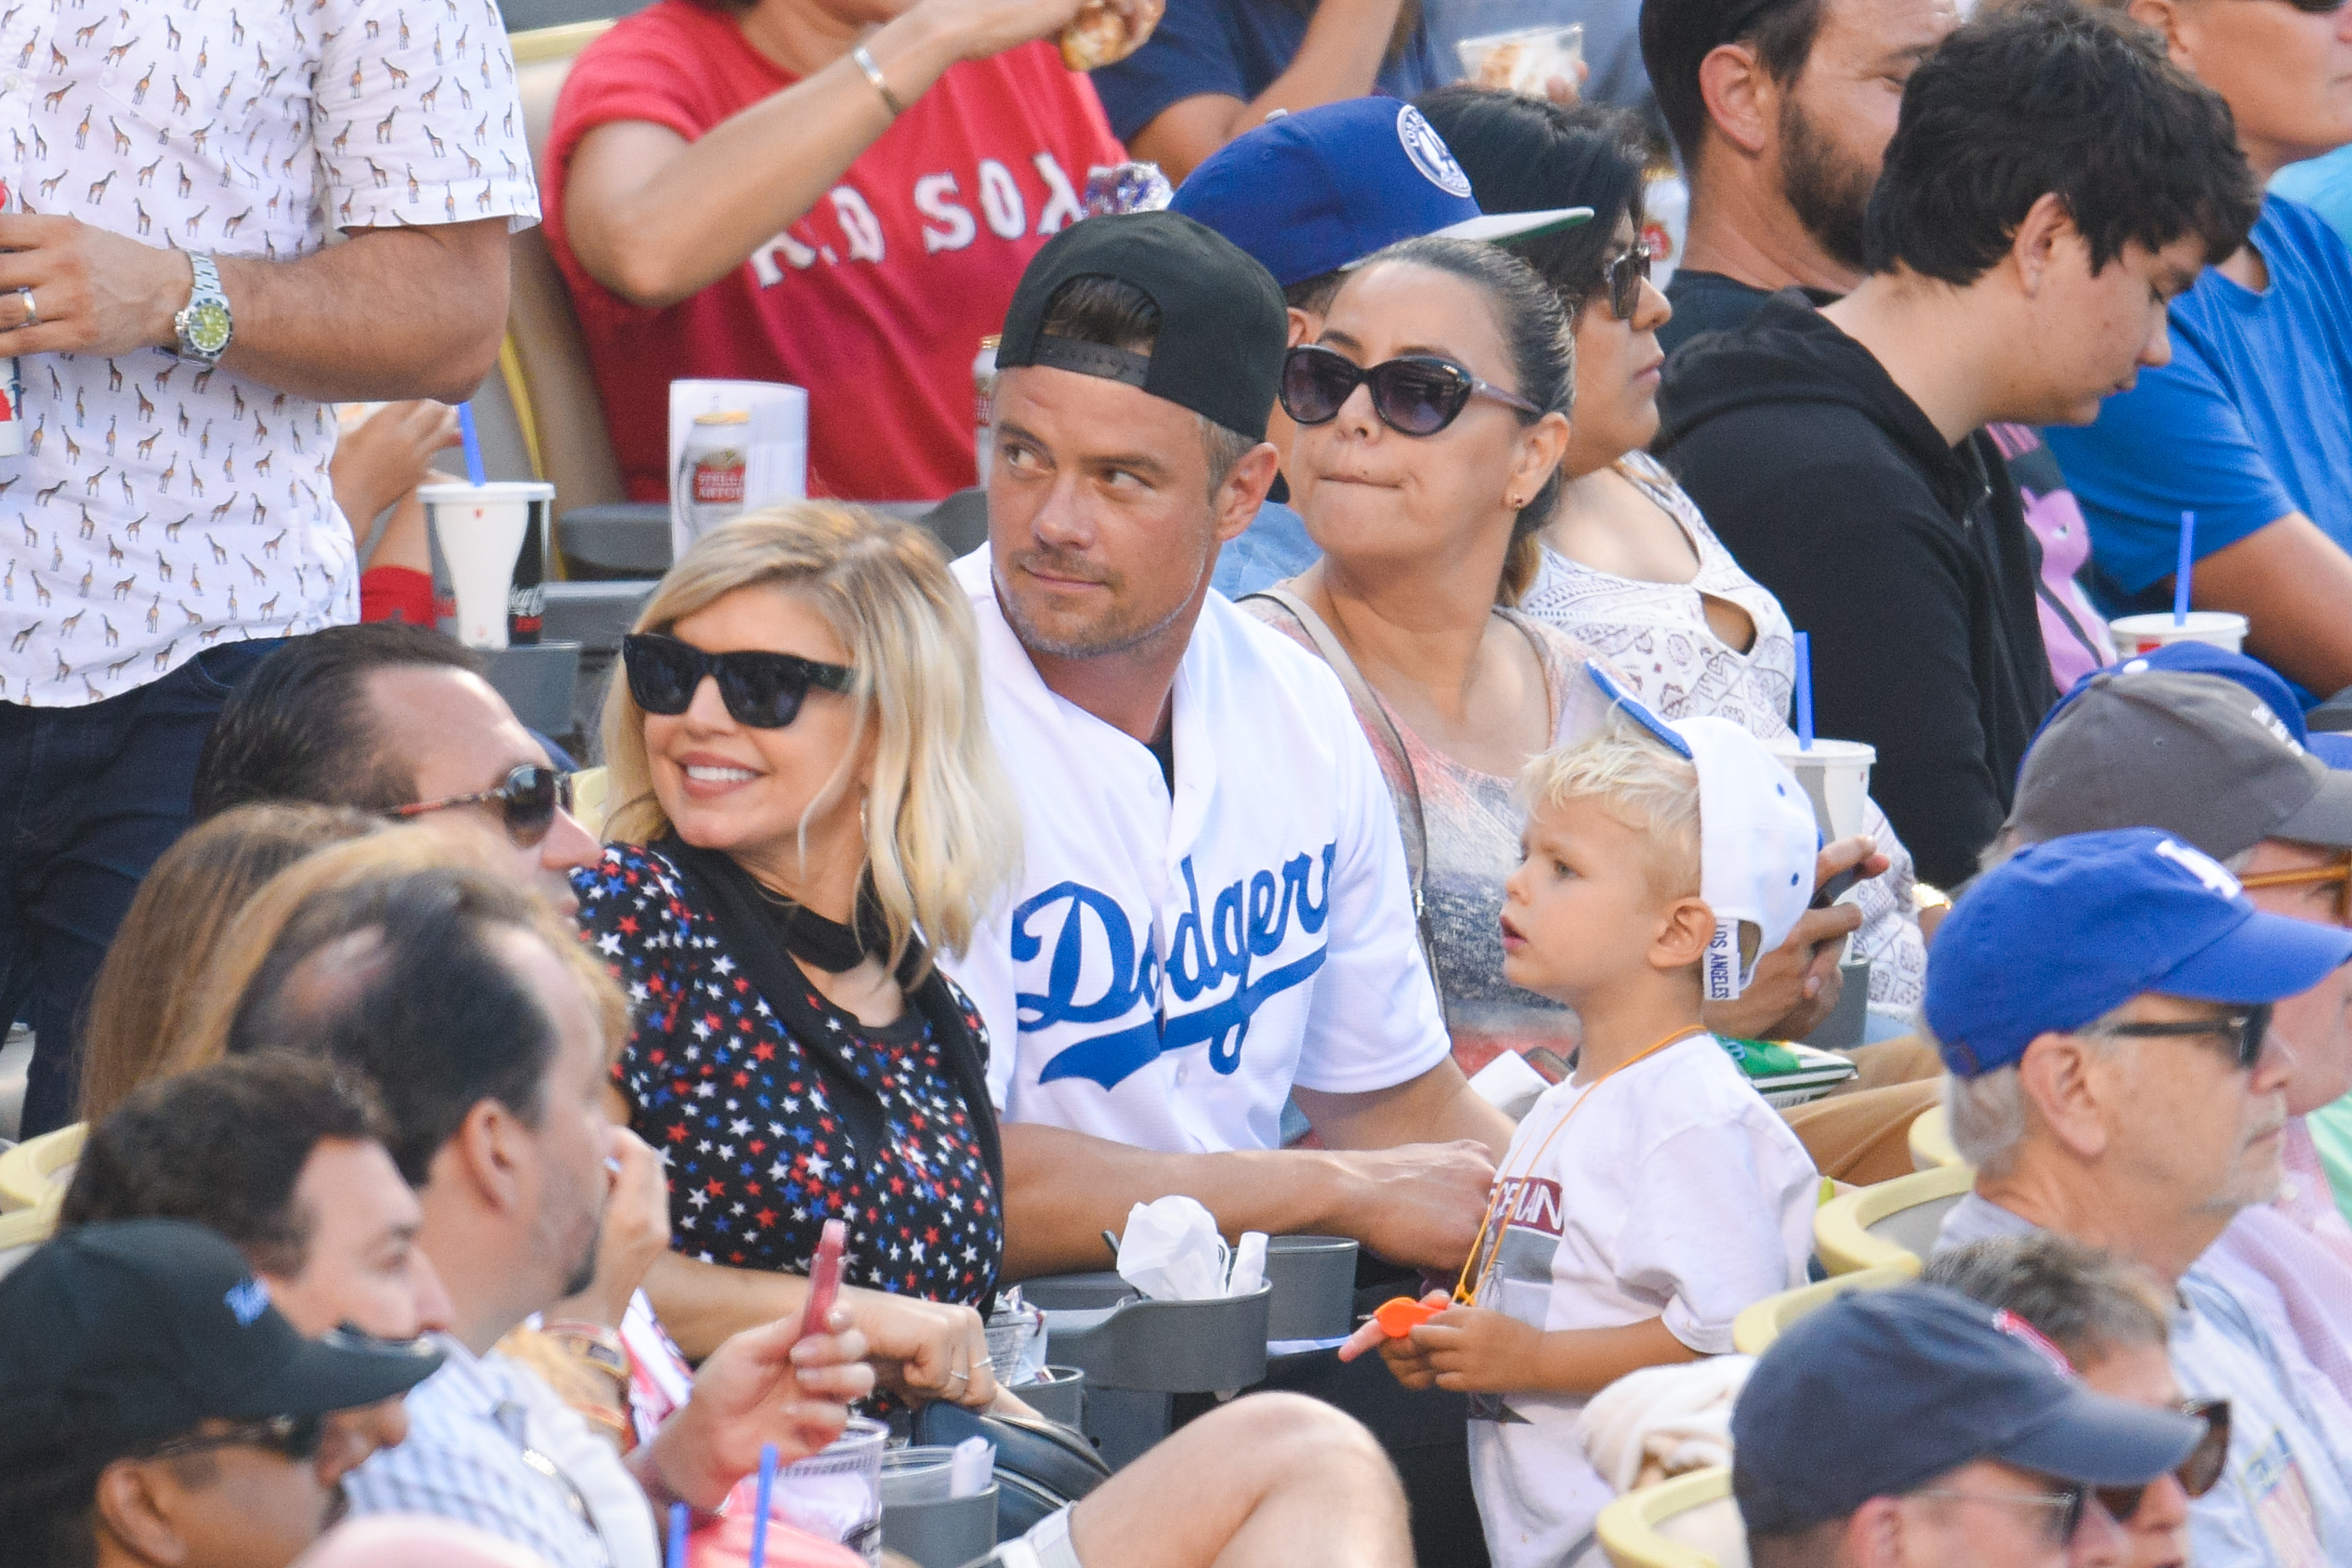 OMG Fergie took her 2-year-old son Axl to his first baseball game and it's too cute to handle